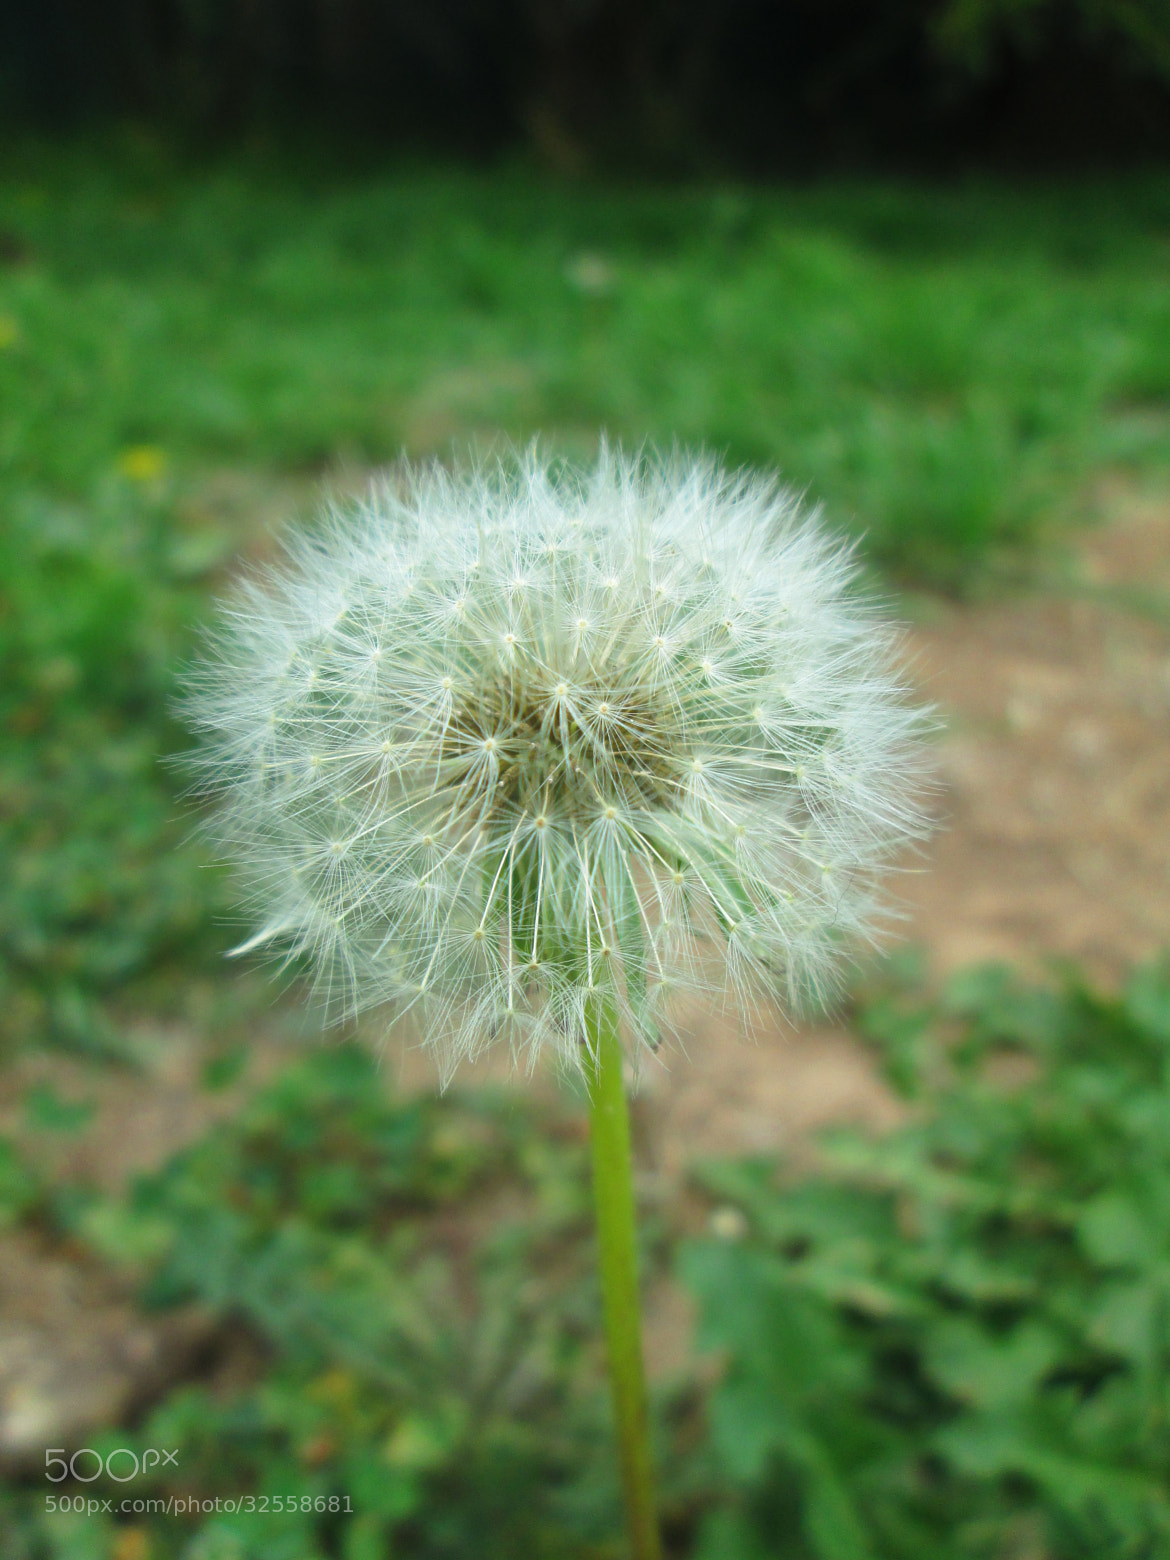 Photograph Darling Dandelion by Kayla Smith on 500px